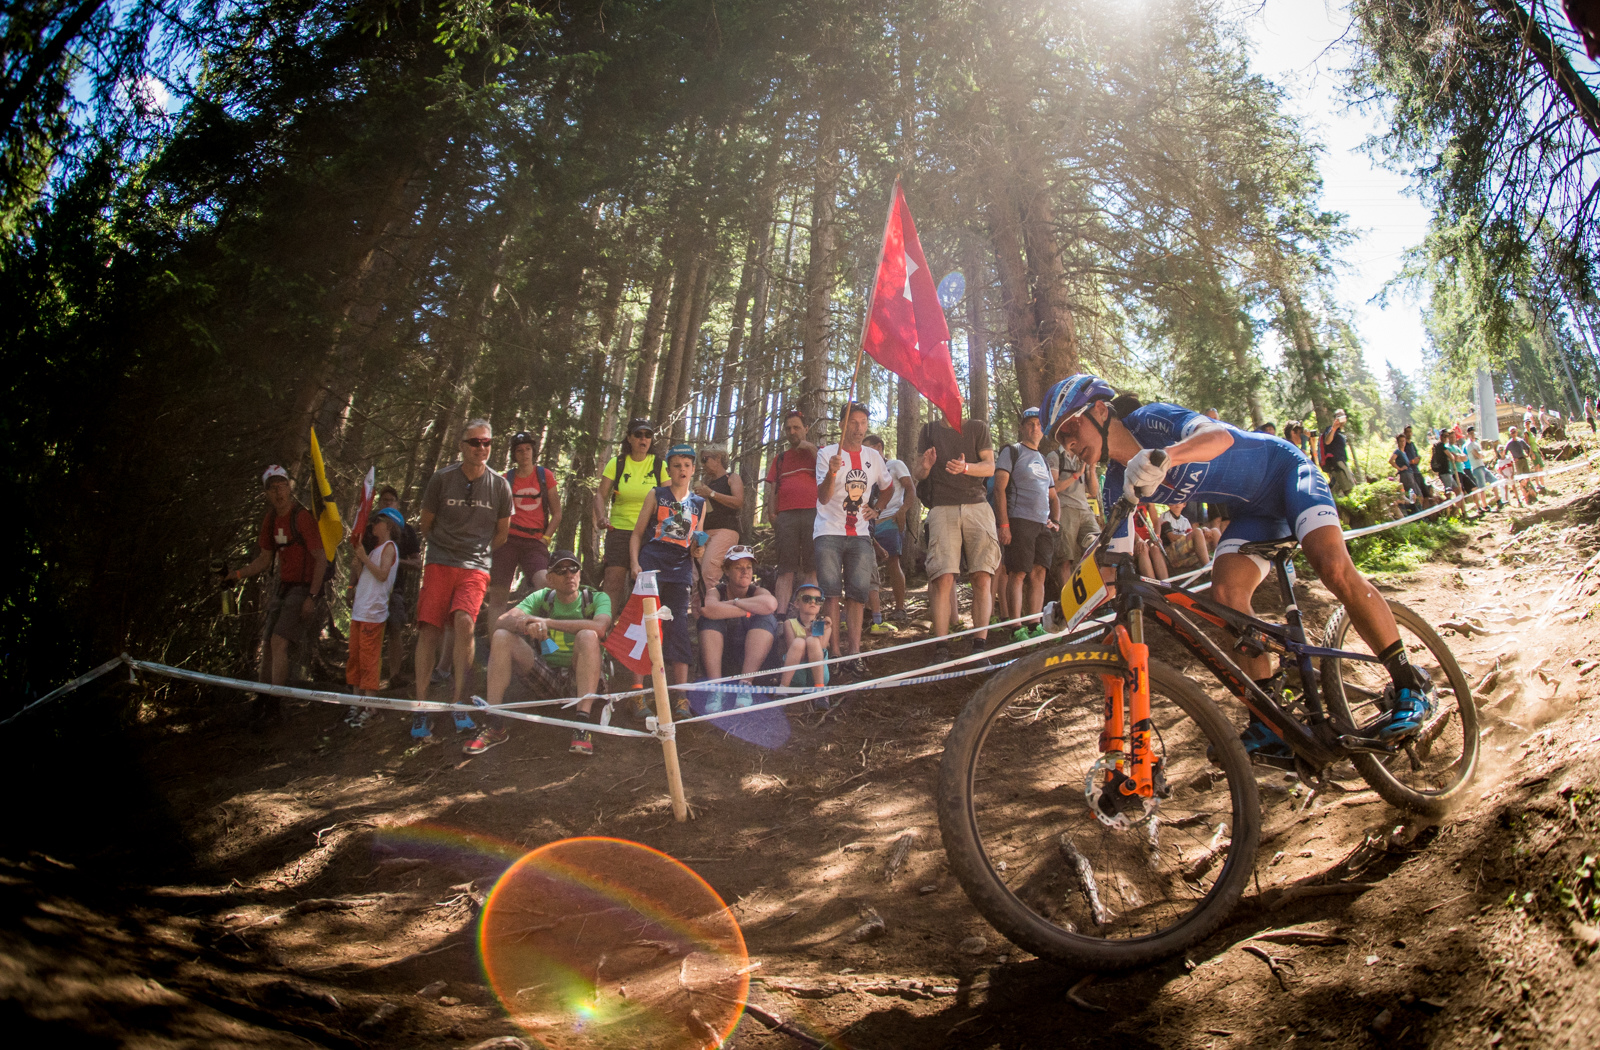 Katarina Nash had a roaring good day out on the dusty Lenzerheide course. Nash took fourth.